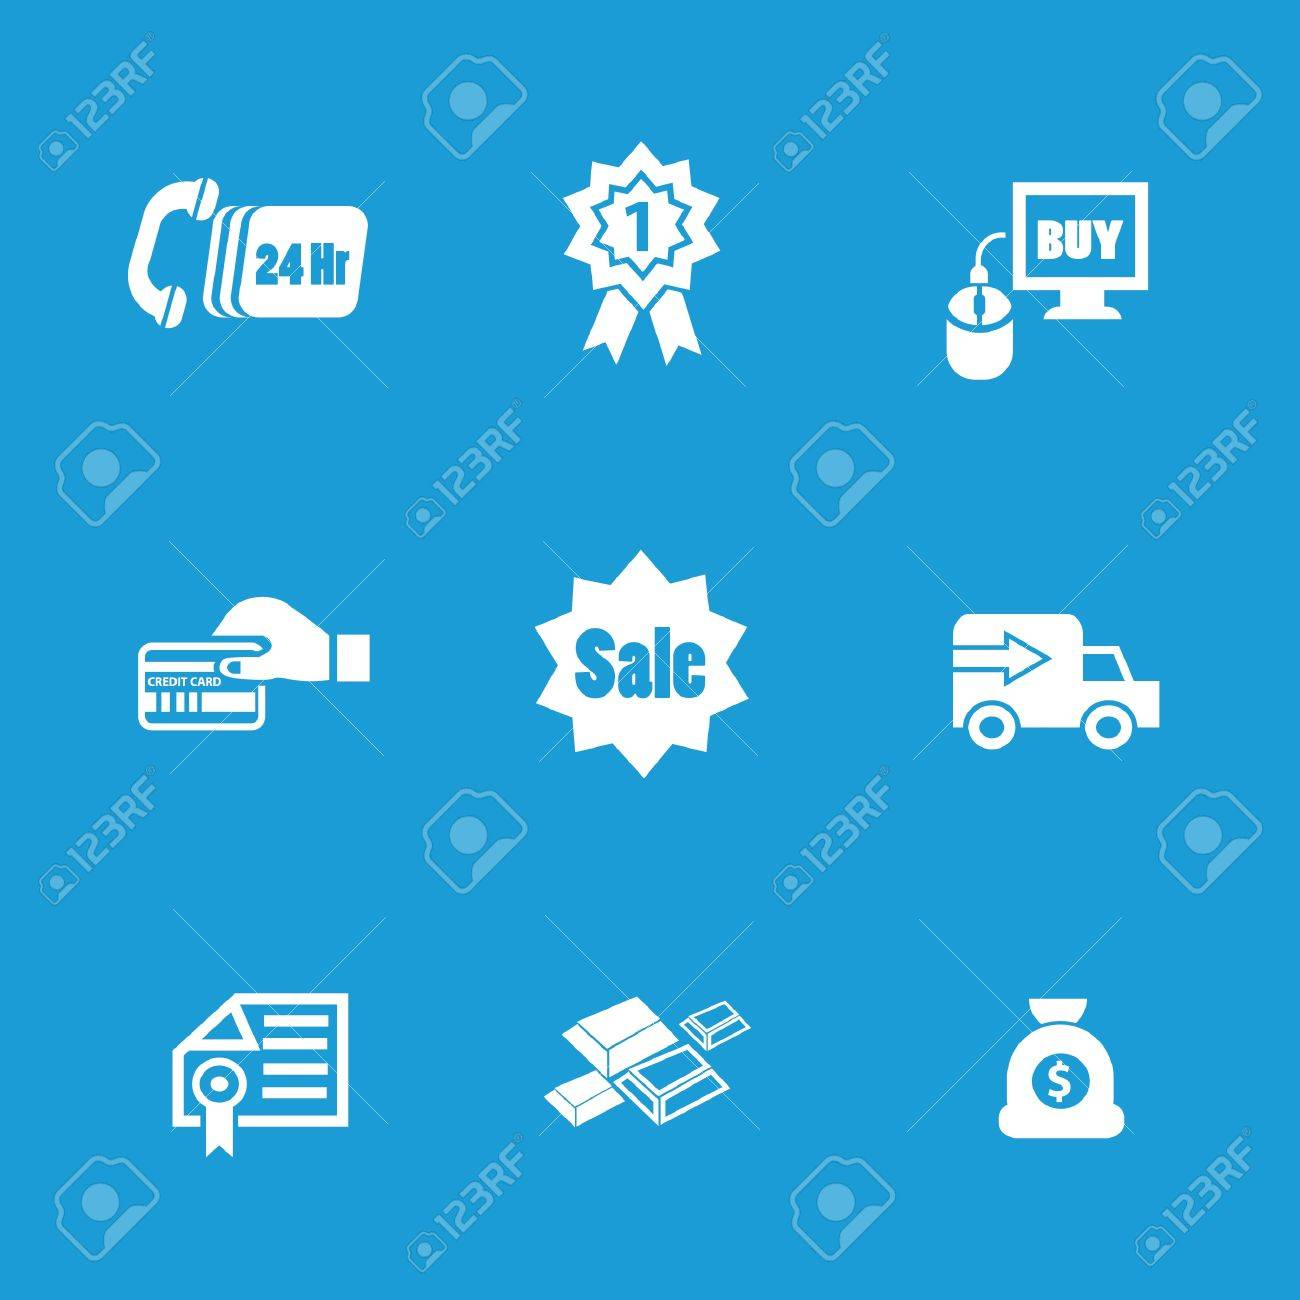 E-commerce technology icons Stock Vector - 19770694